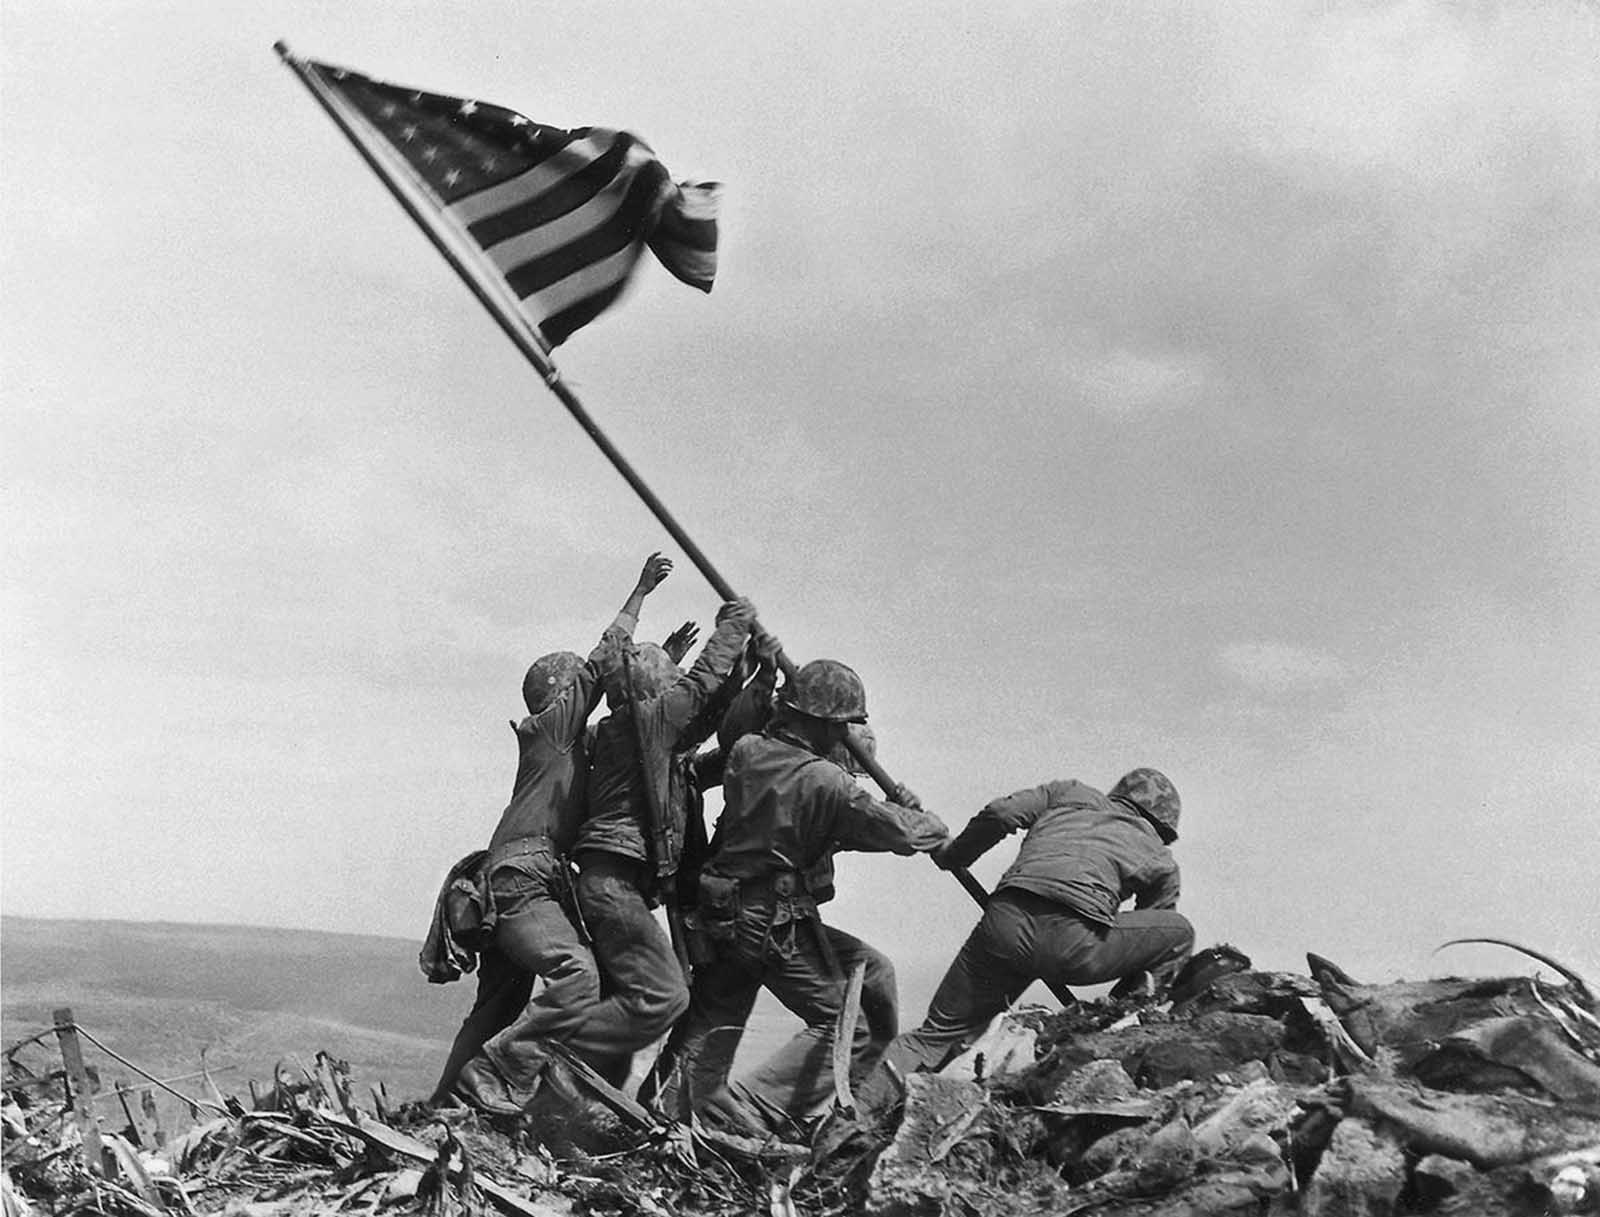 U.S. Marines of the 28th Regiment of the Fifth Division raise the American flag atop Mt. Suribachi, Iwo Jima, on February 23, 1945. The Battle of Iwo Jima was the costliest in Marine Corps history, with almost 7,000 Americans killed in 36 days of fighting.